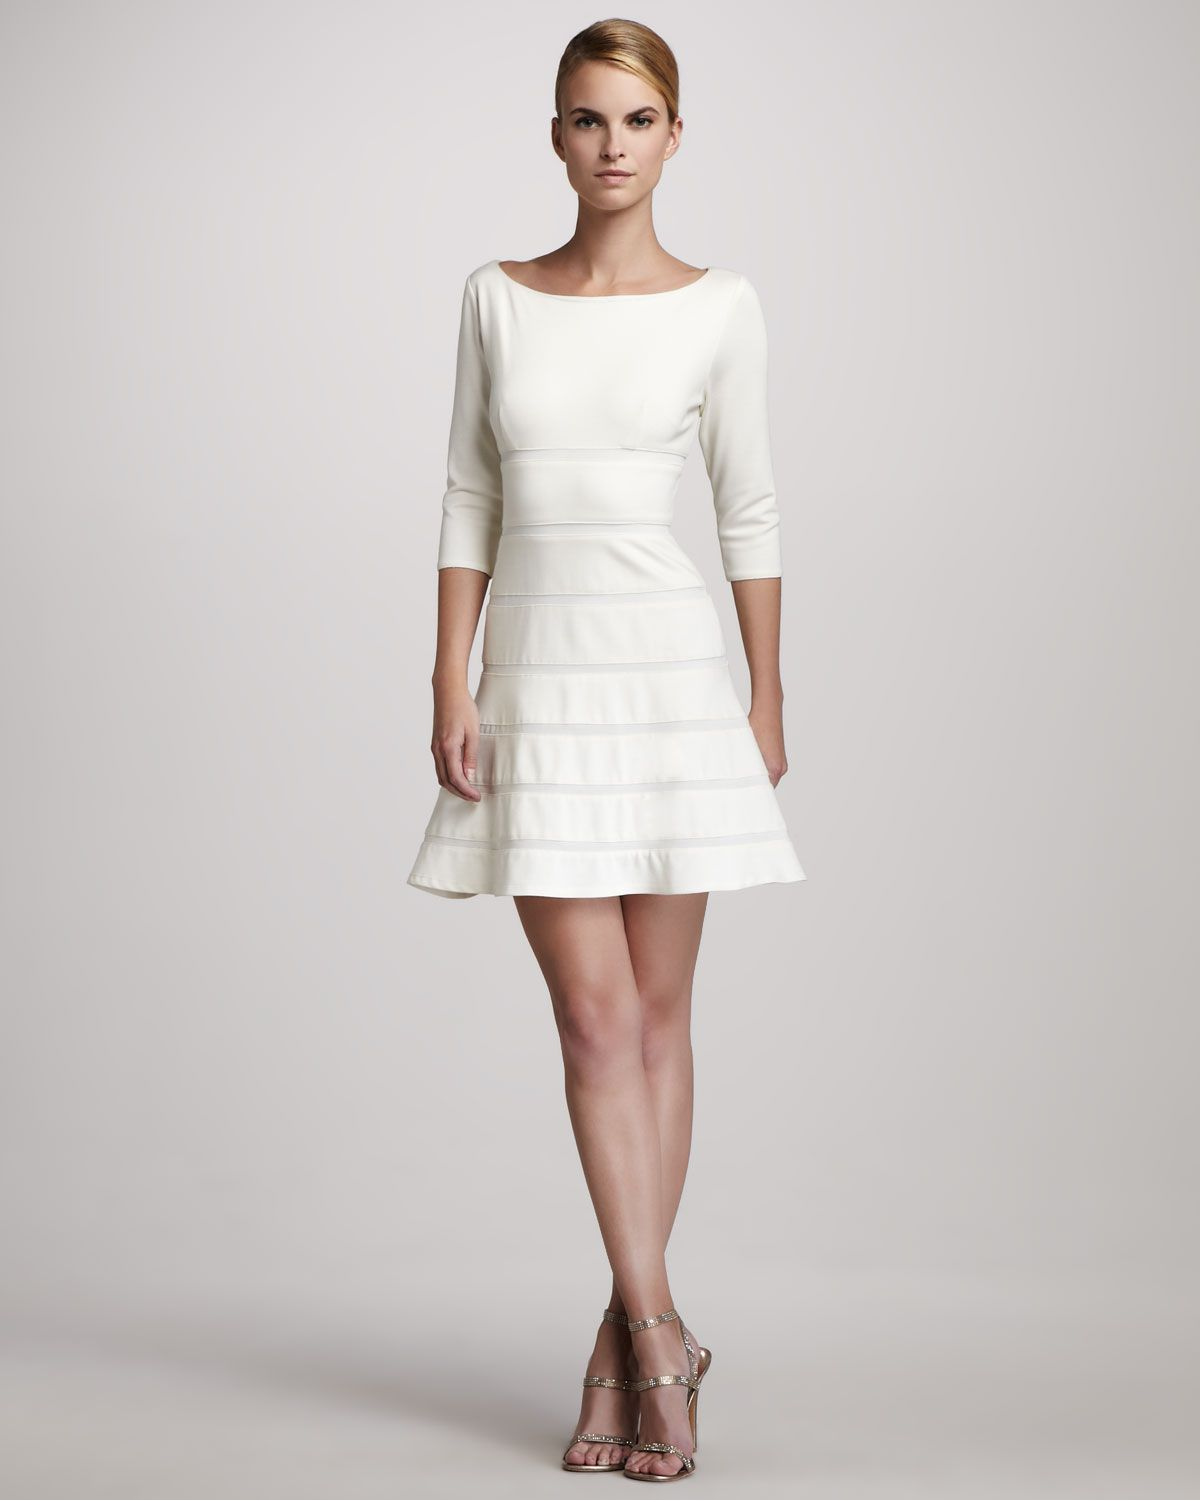 Erin Fetherston Banded A-Line Dress - Neiman Marcus | Sewing ...